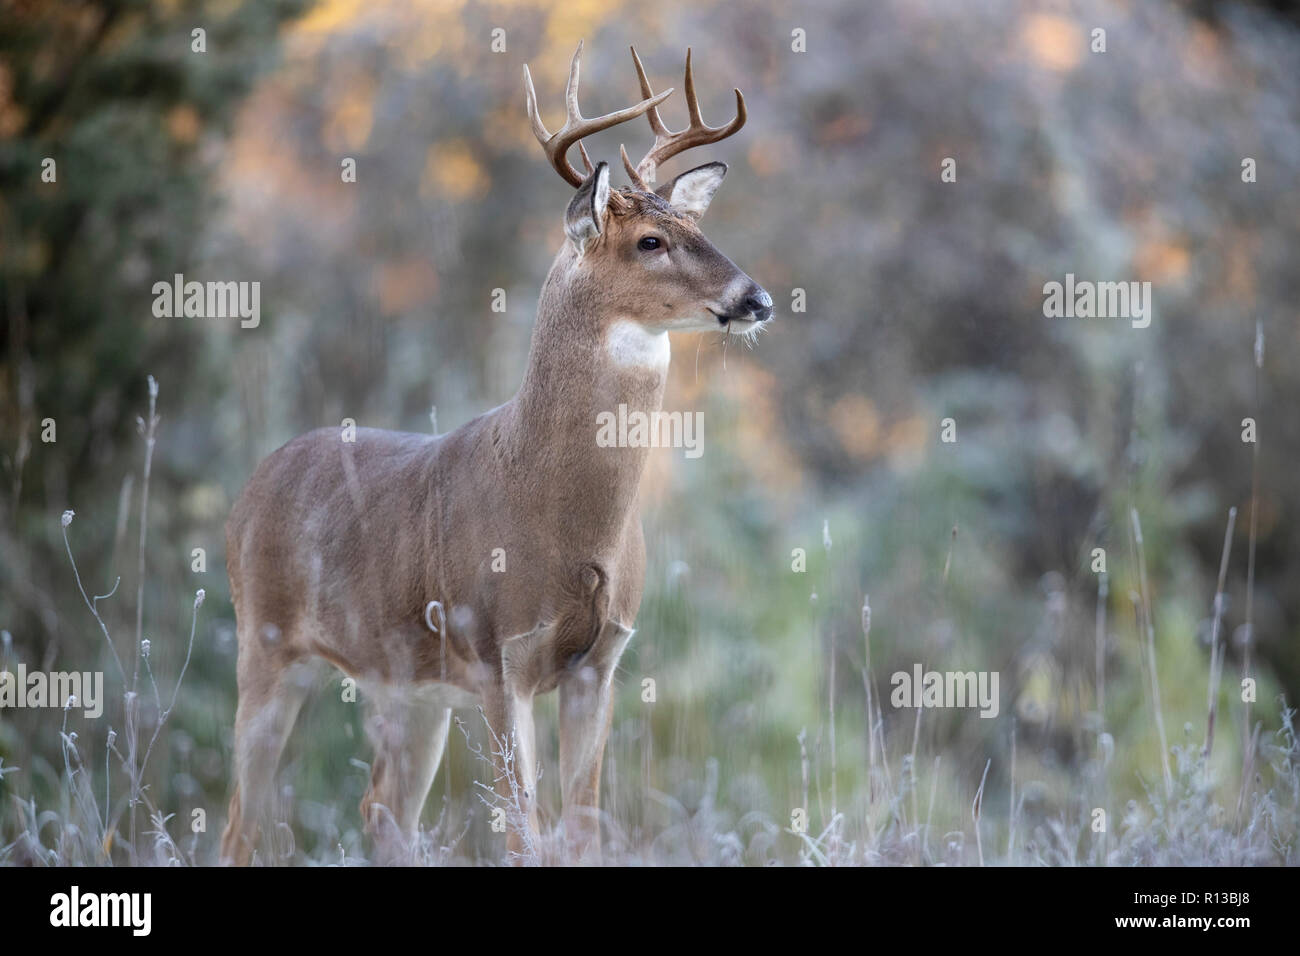 An alert buck whitetail deer looking in the distance. - Stock Image